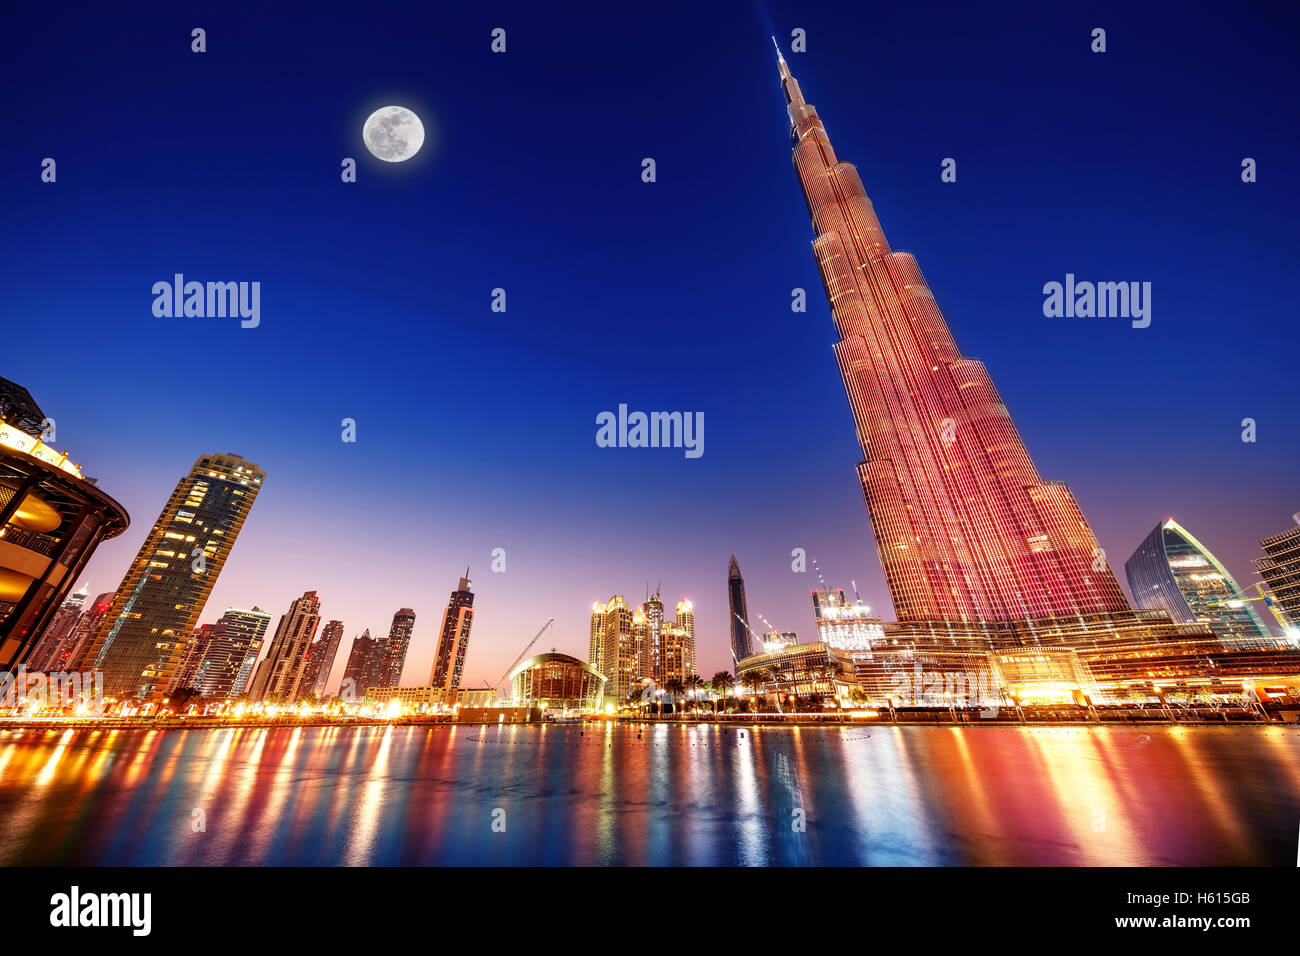 DUBAI, UAE - FEBRUARY 17: Burj Khalifa and fountain - world's tallest tower at 828m at night with moon light - Stock Image